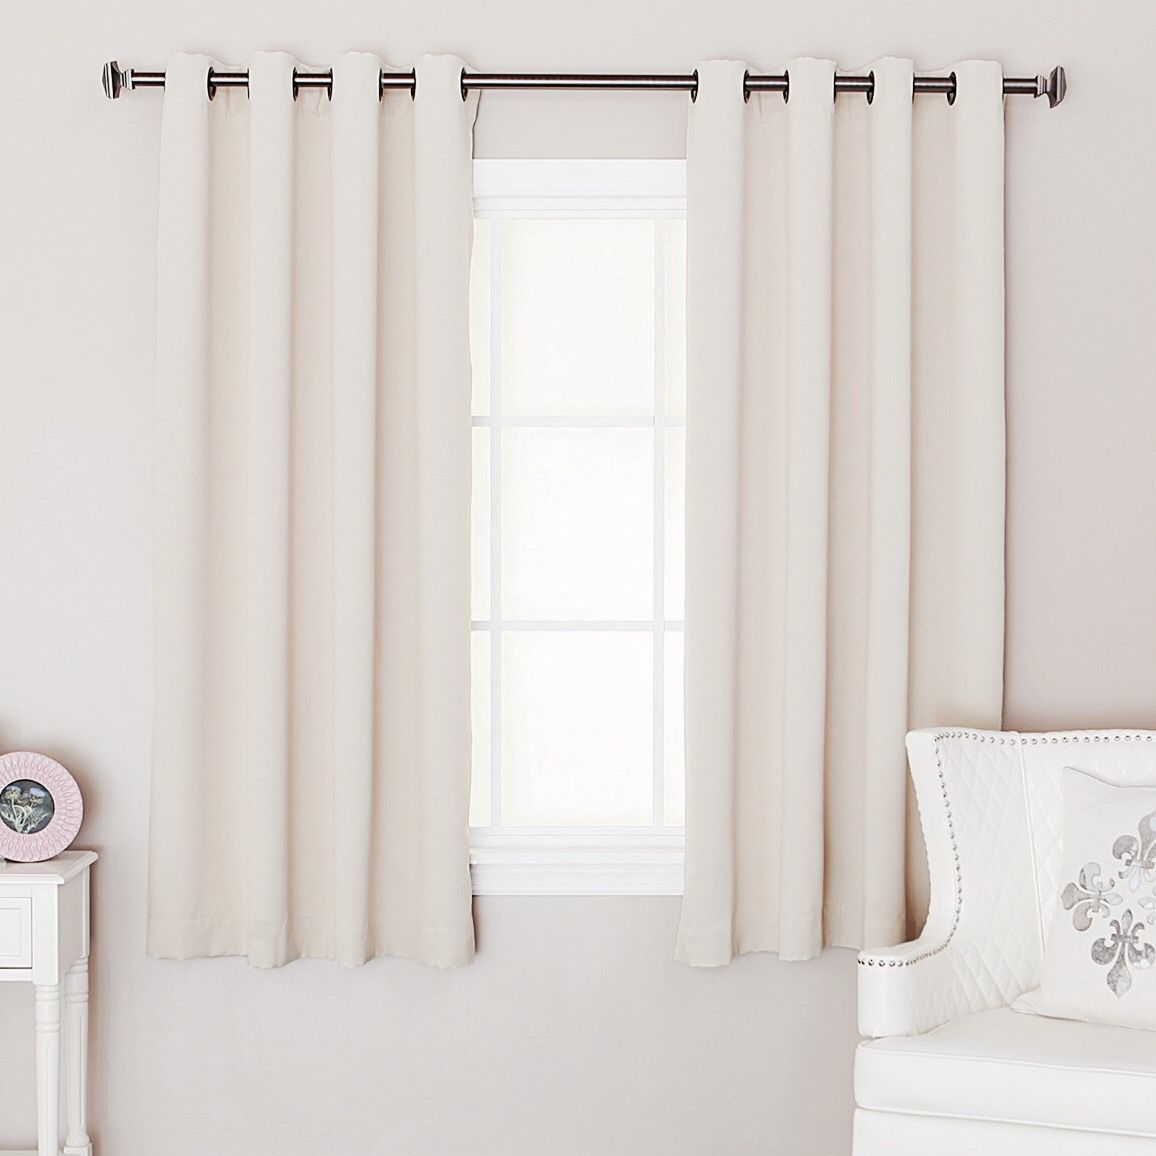 20 Jc Penny But Use Code Now88 And Its 16 Simple Curtains For Your Window So You Can Maybe Have Some Privacy